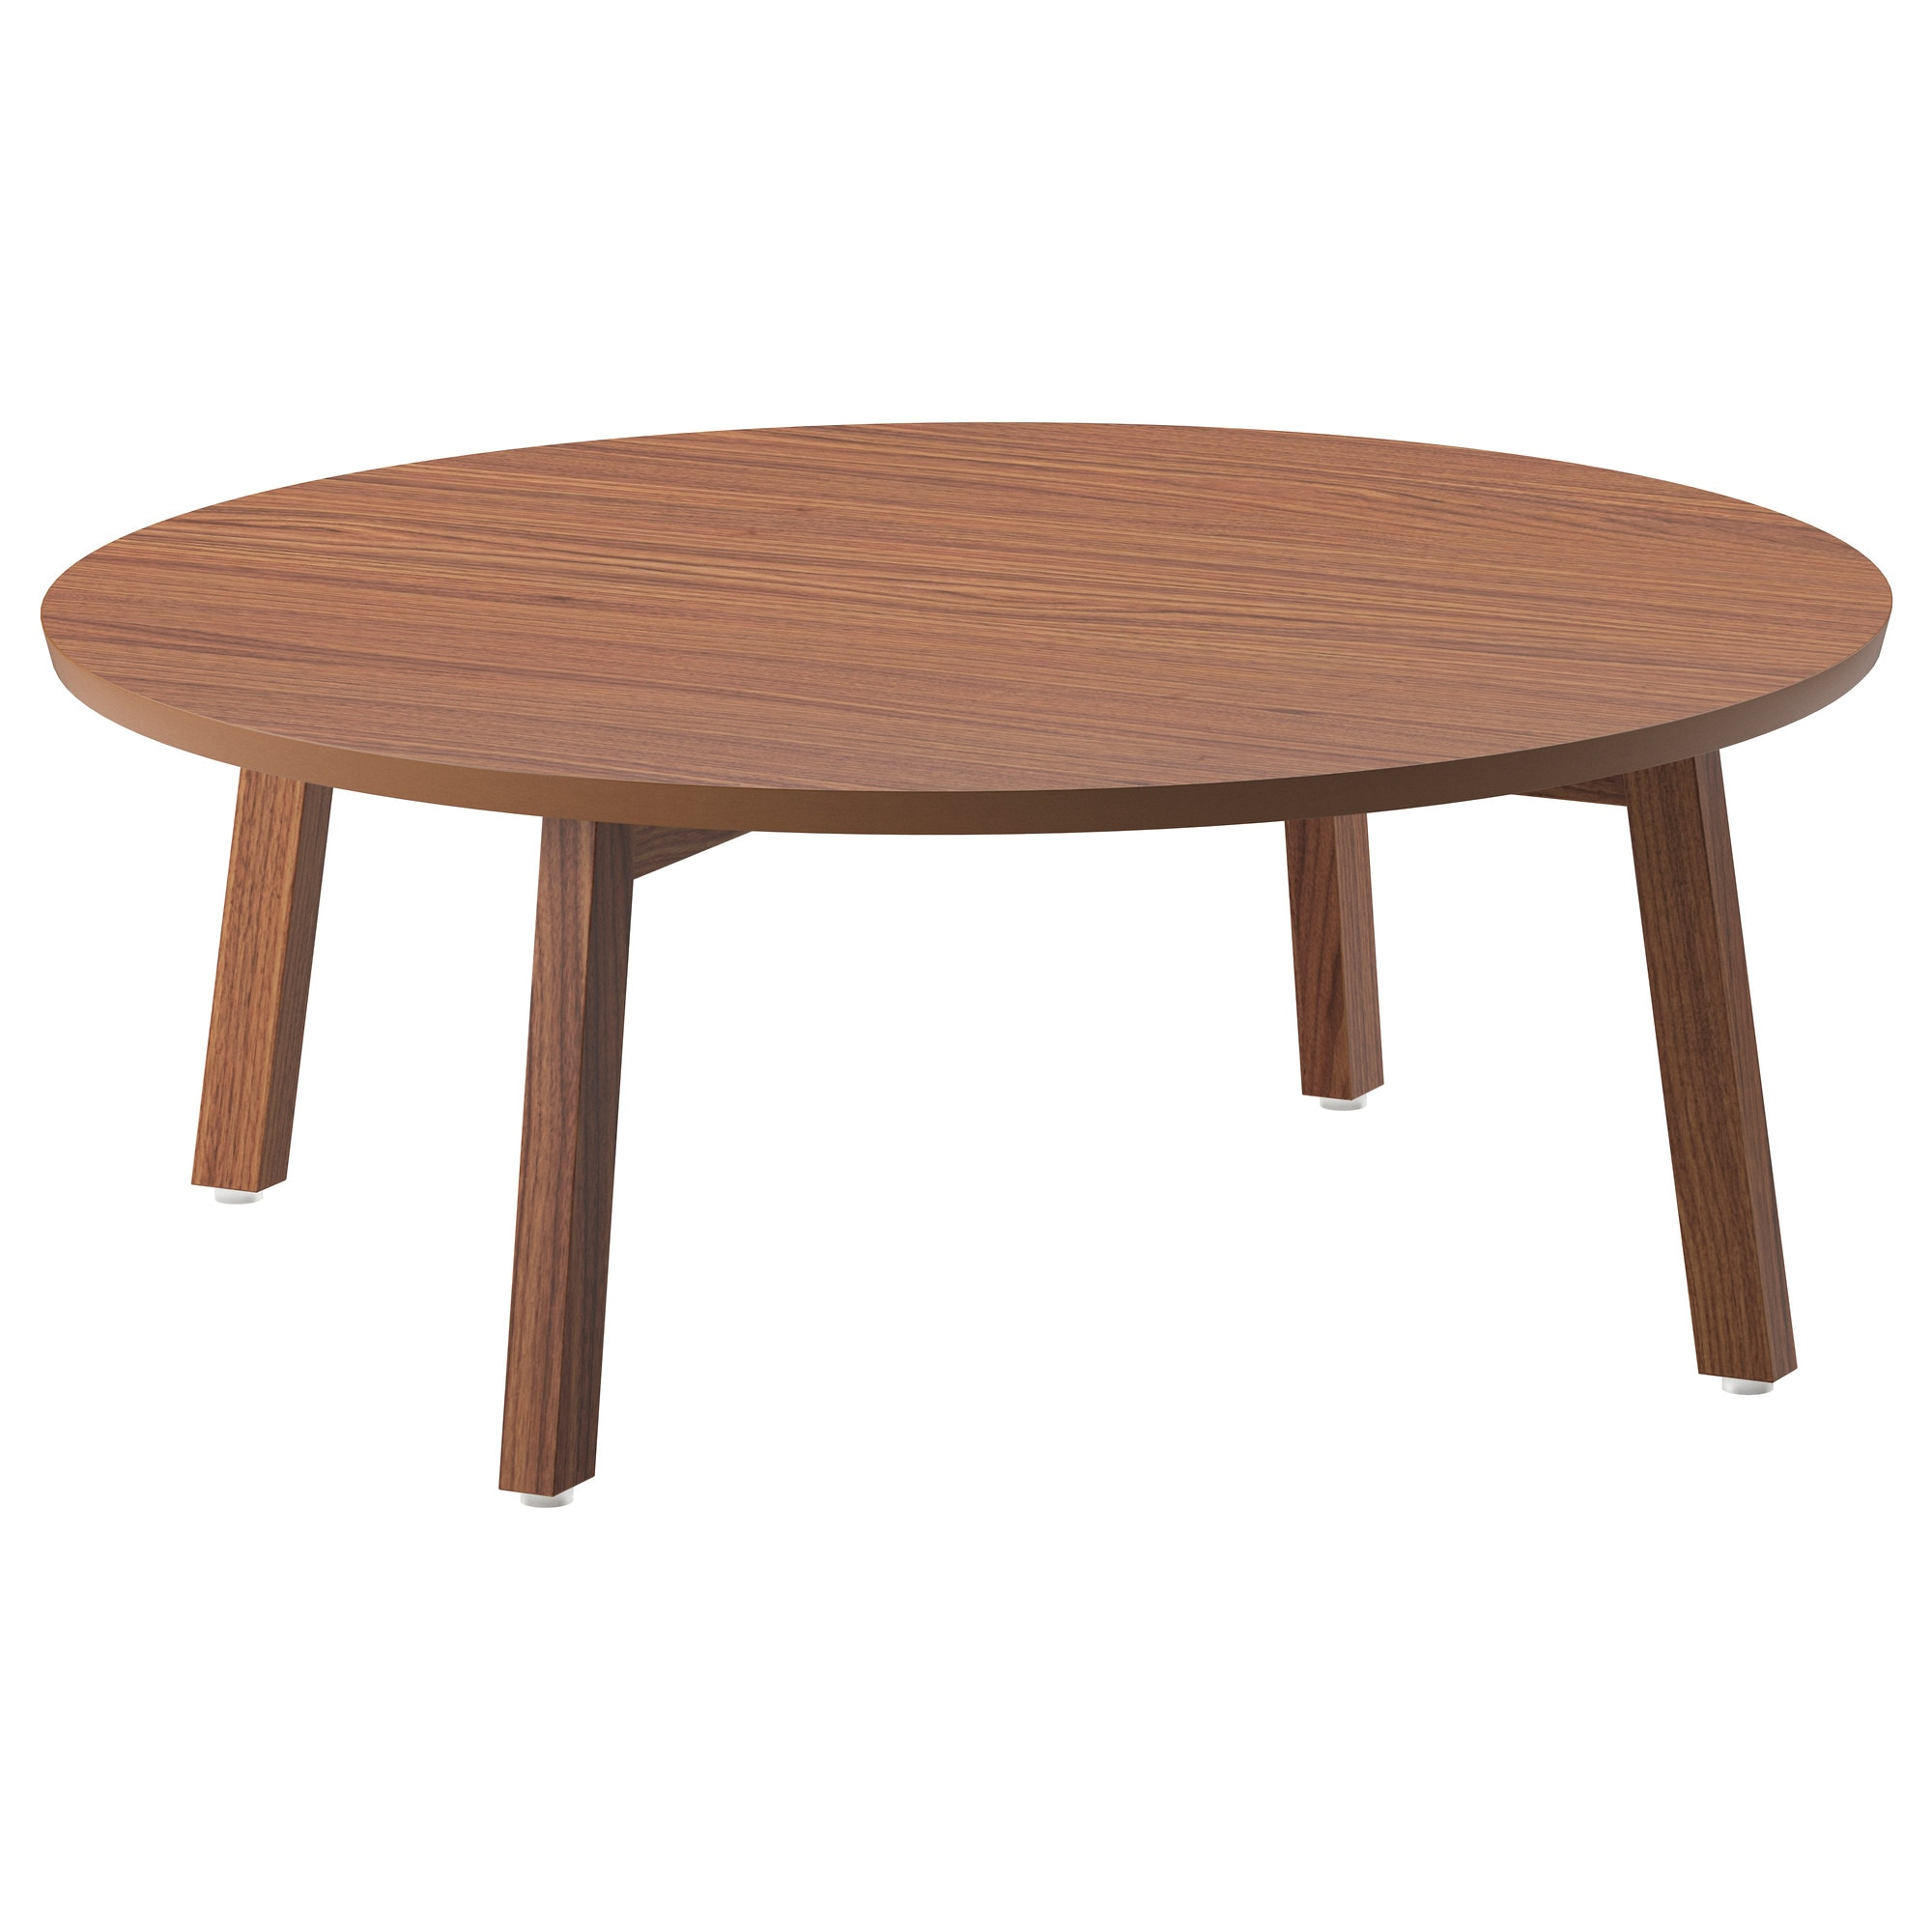 STOCKHOLM Coffee table IKEA